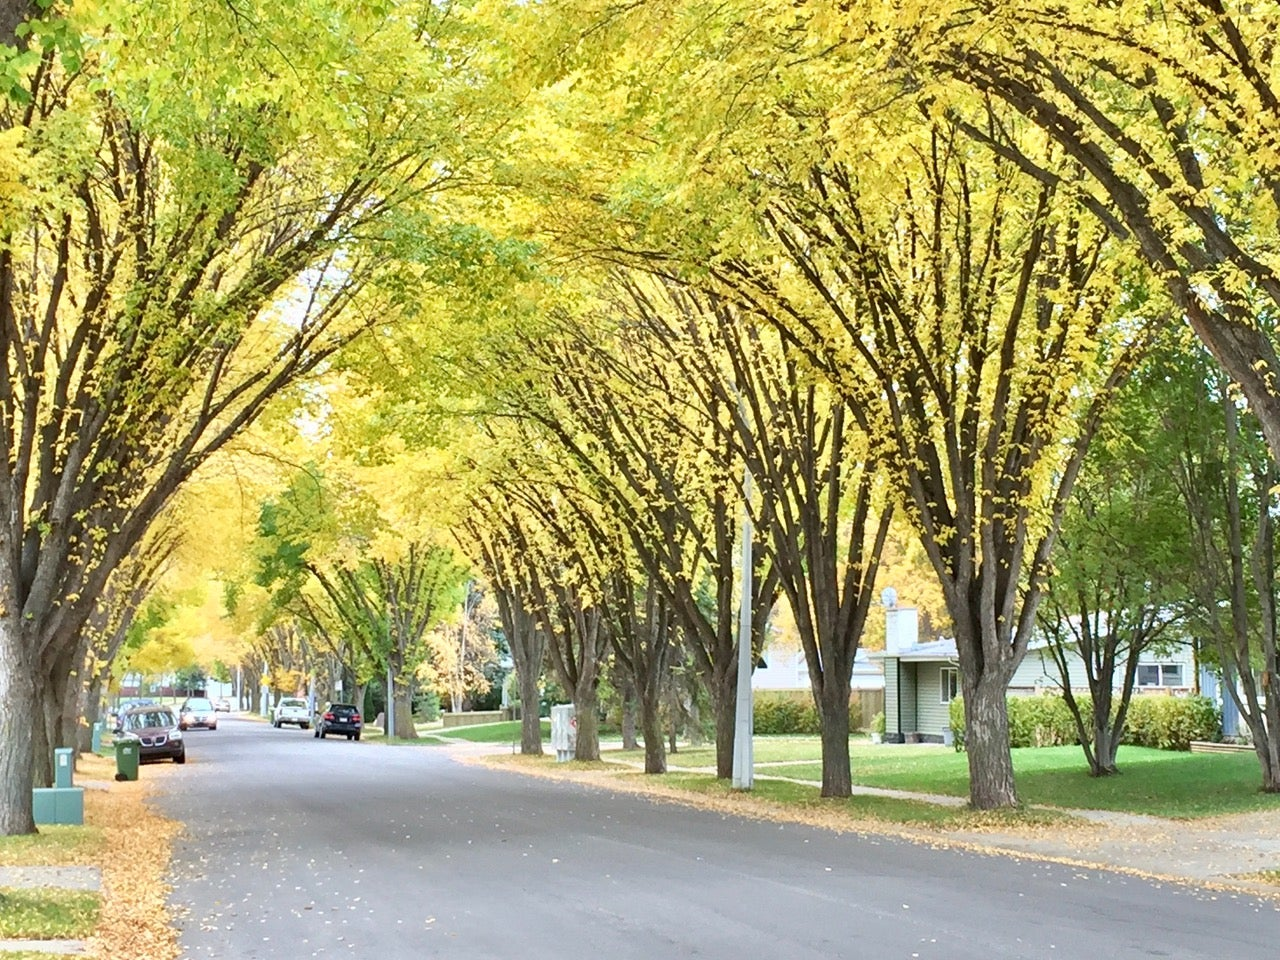 fall leaves on the trees on St. Albert's Forest Drive